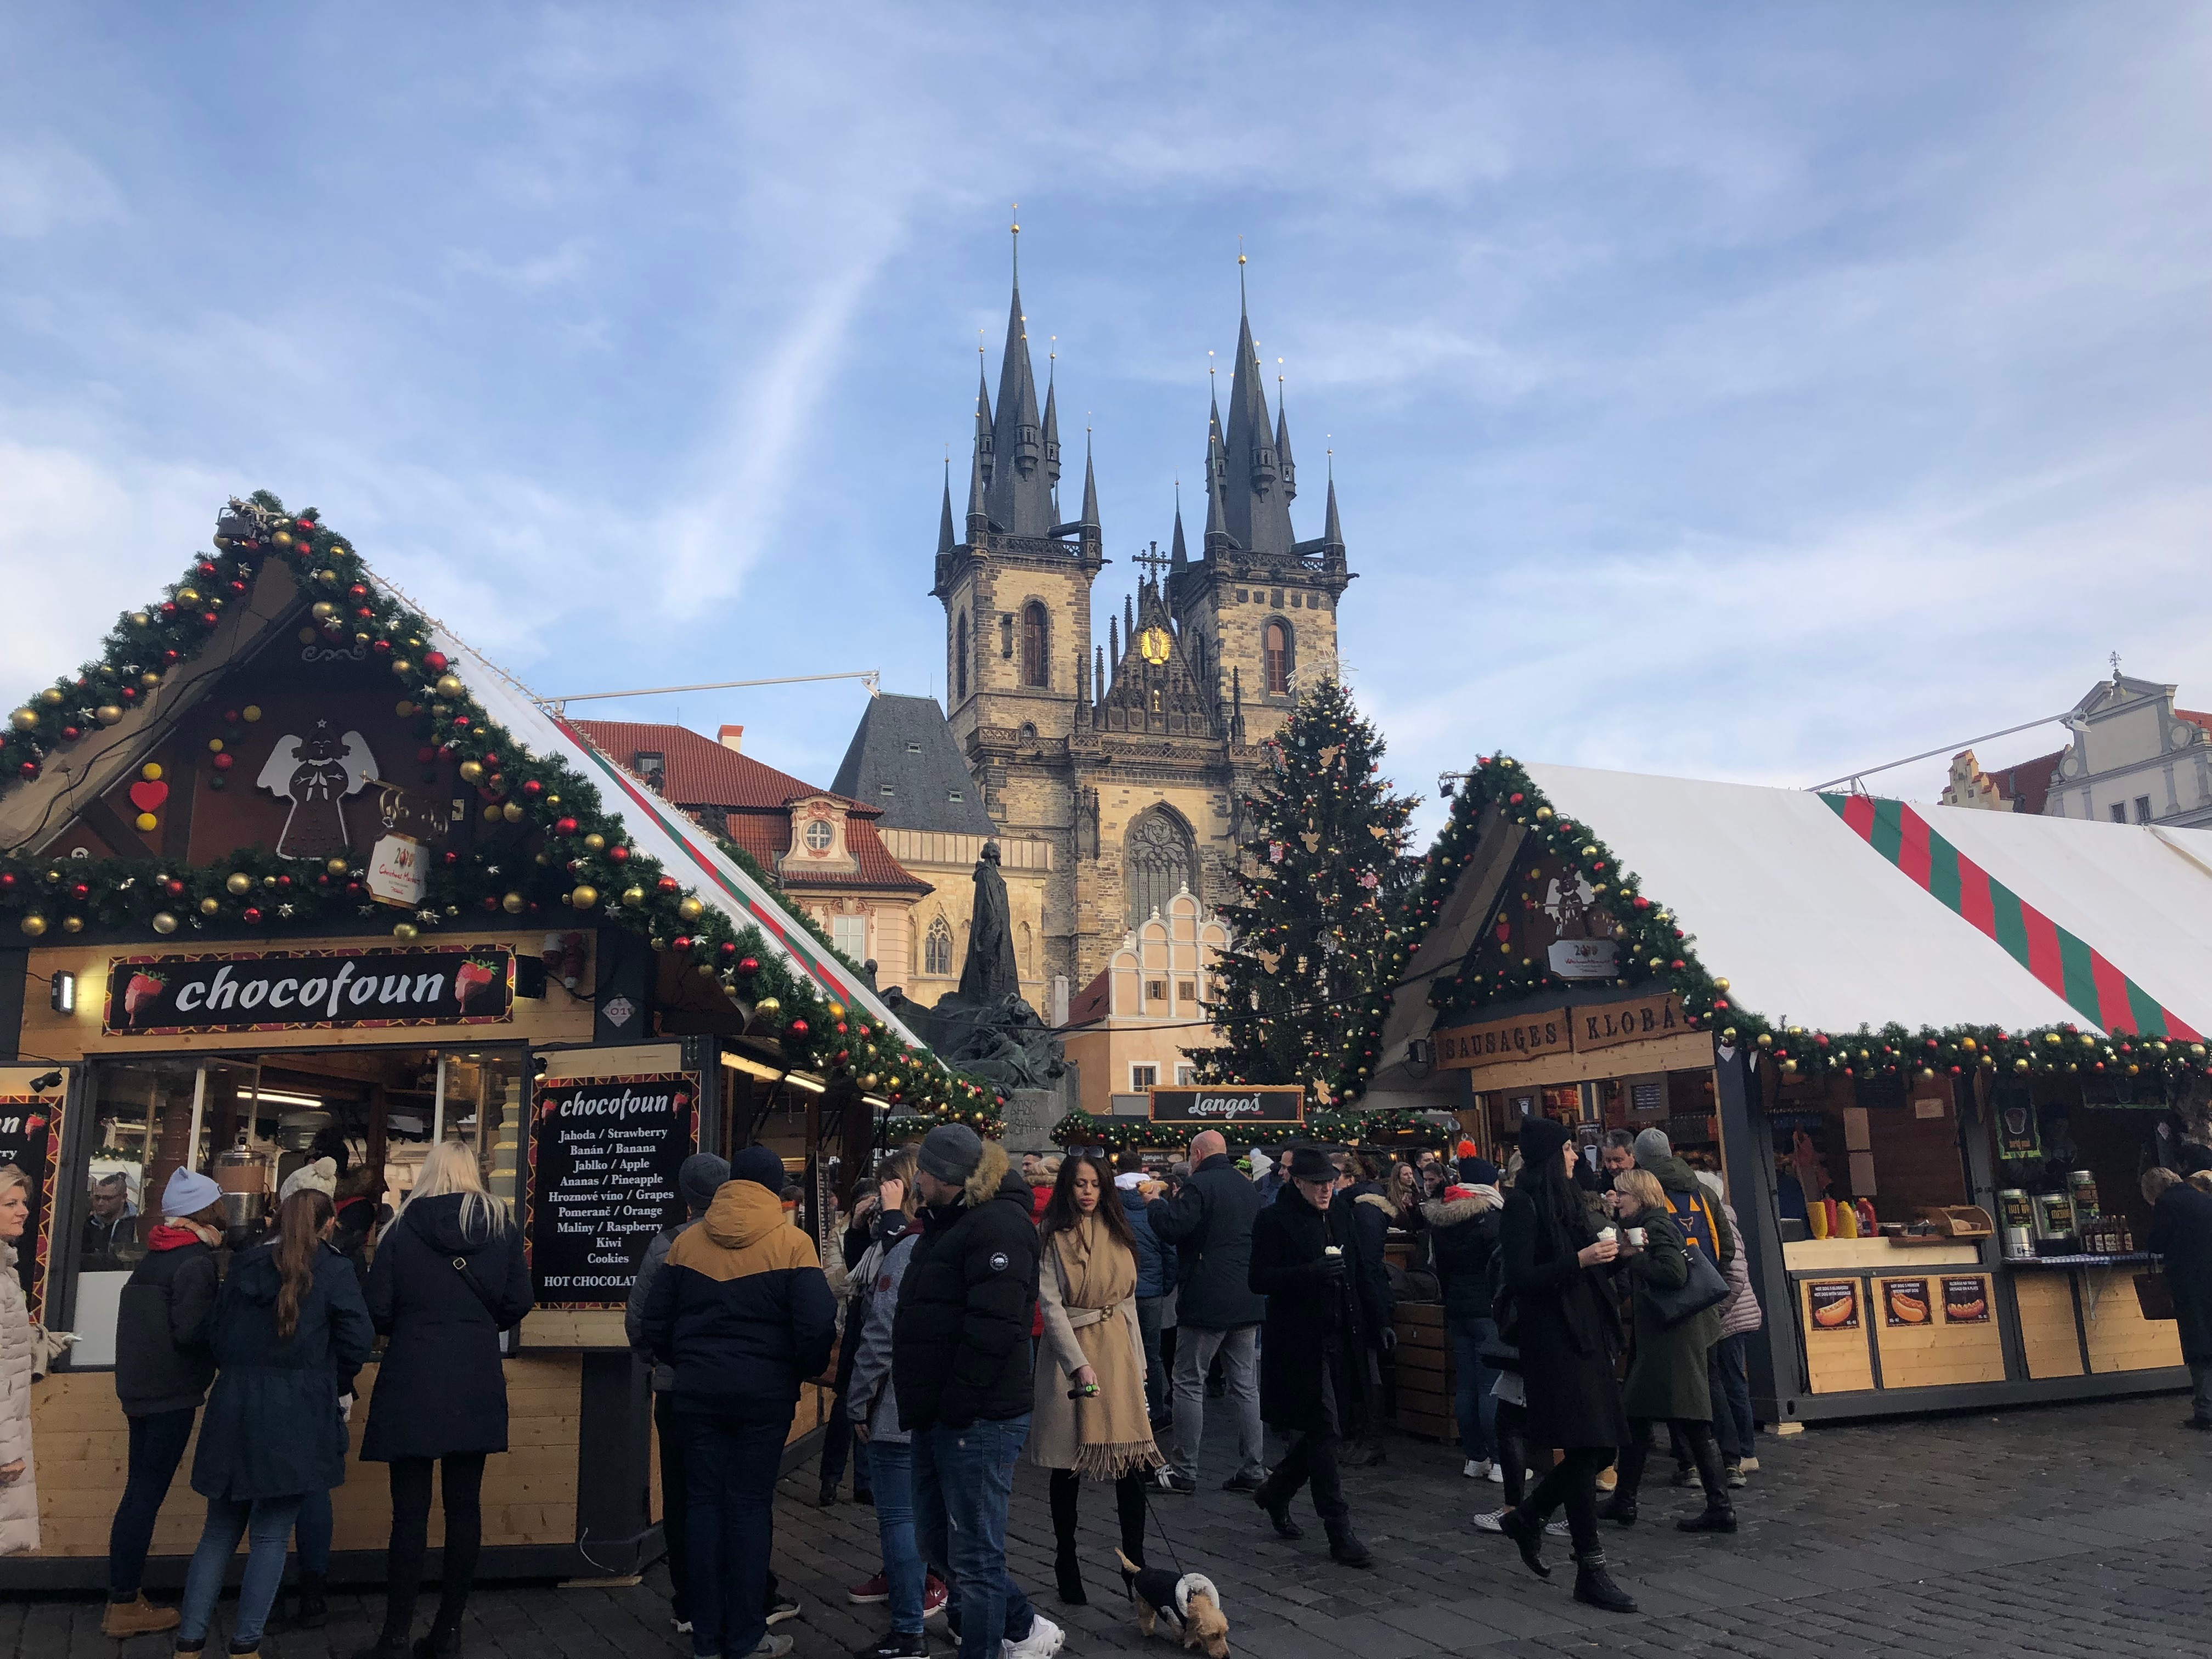 A Christmas market in Prague.